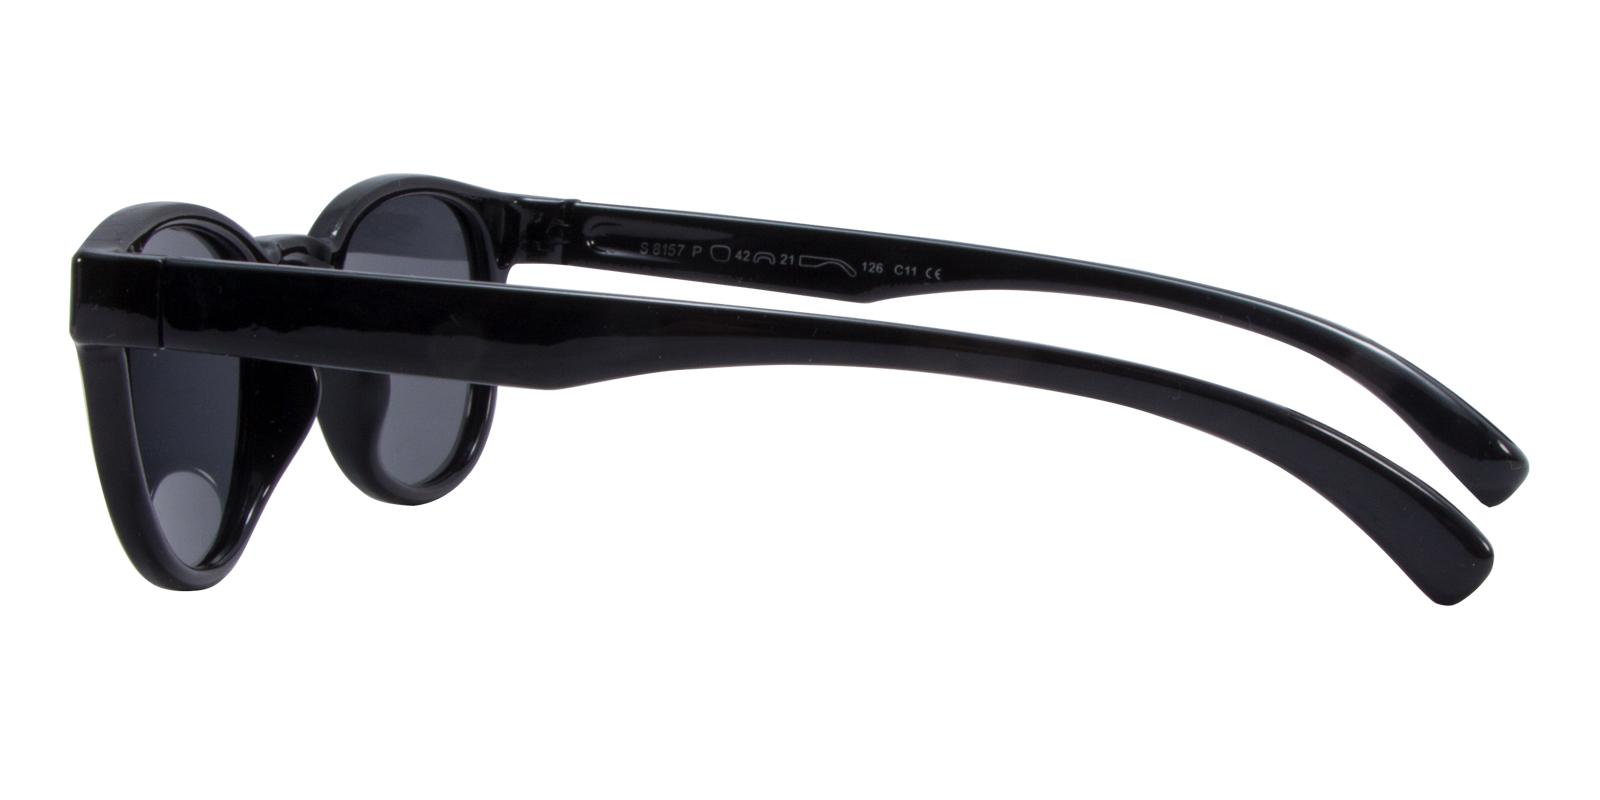 Umbriel Black TR Sunglasses Frames from ABBE Glasses